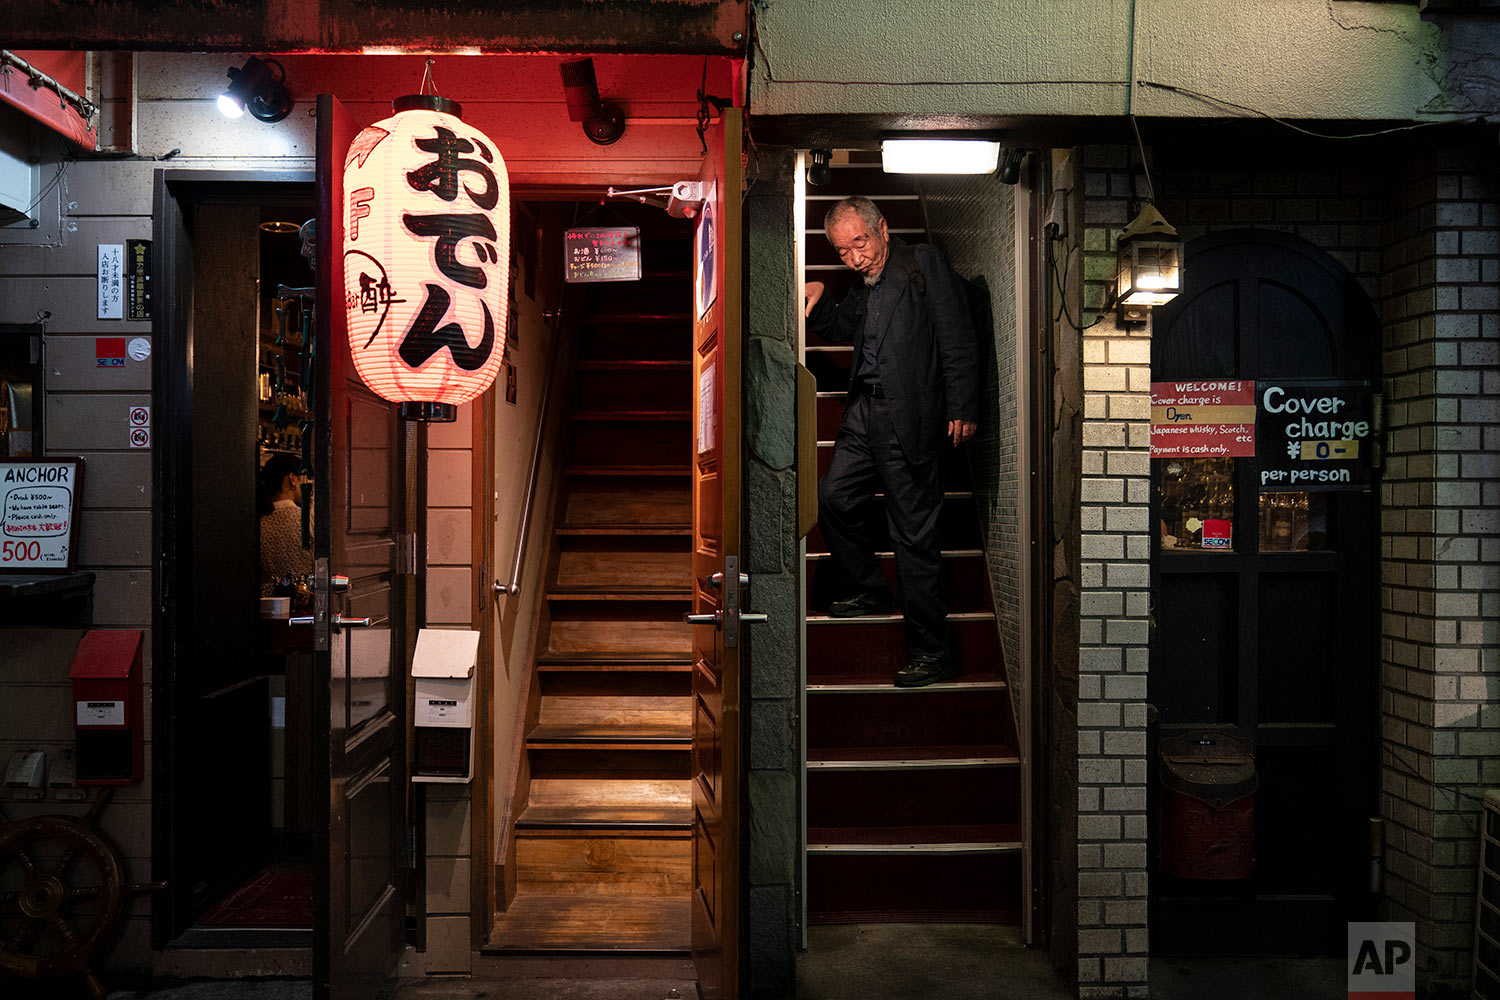 A man walks down the steps of a bar at the Golden Gai in the Shinjuku district of Tokyo, July 17, 2019. (AP Photo/Jae C. Hong)